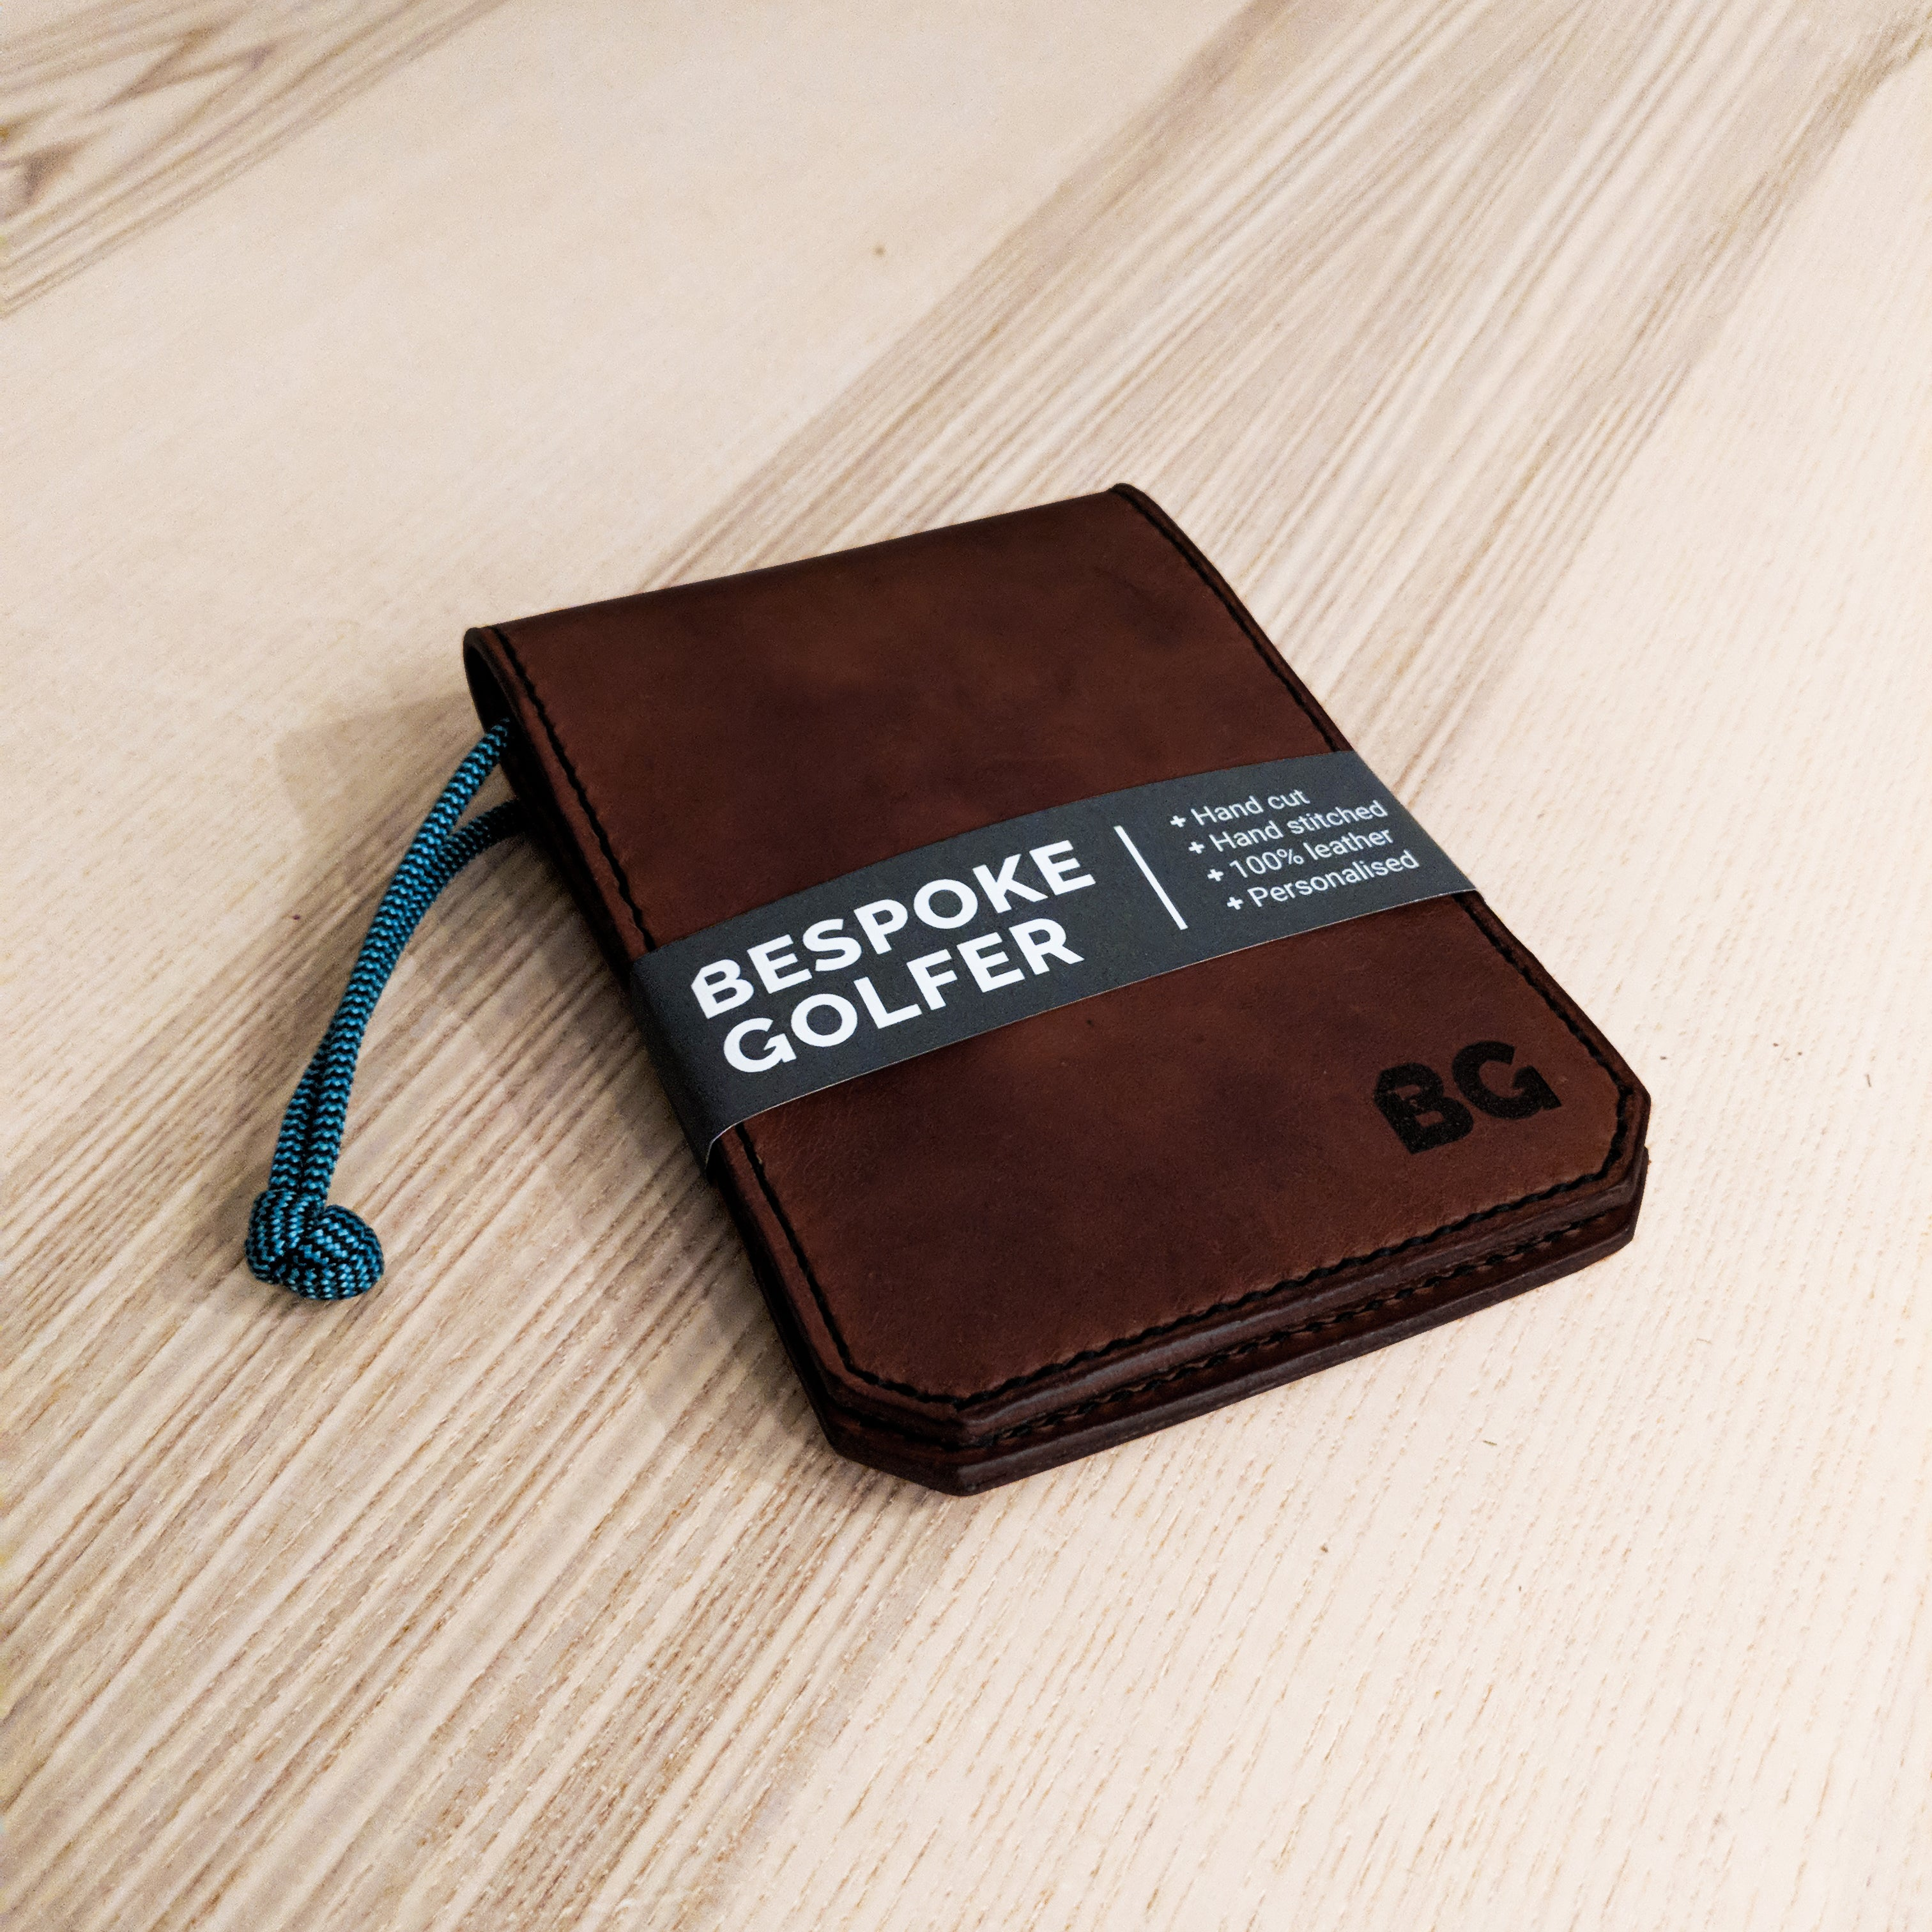 002 Personalised Leather Scorecard Holder // Chocolate with Green & Black zag cord